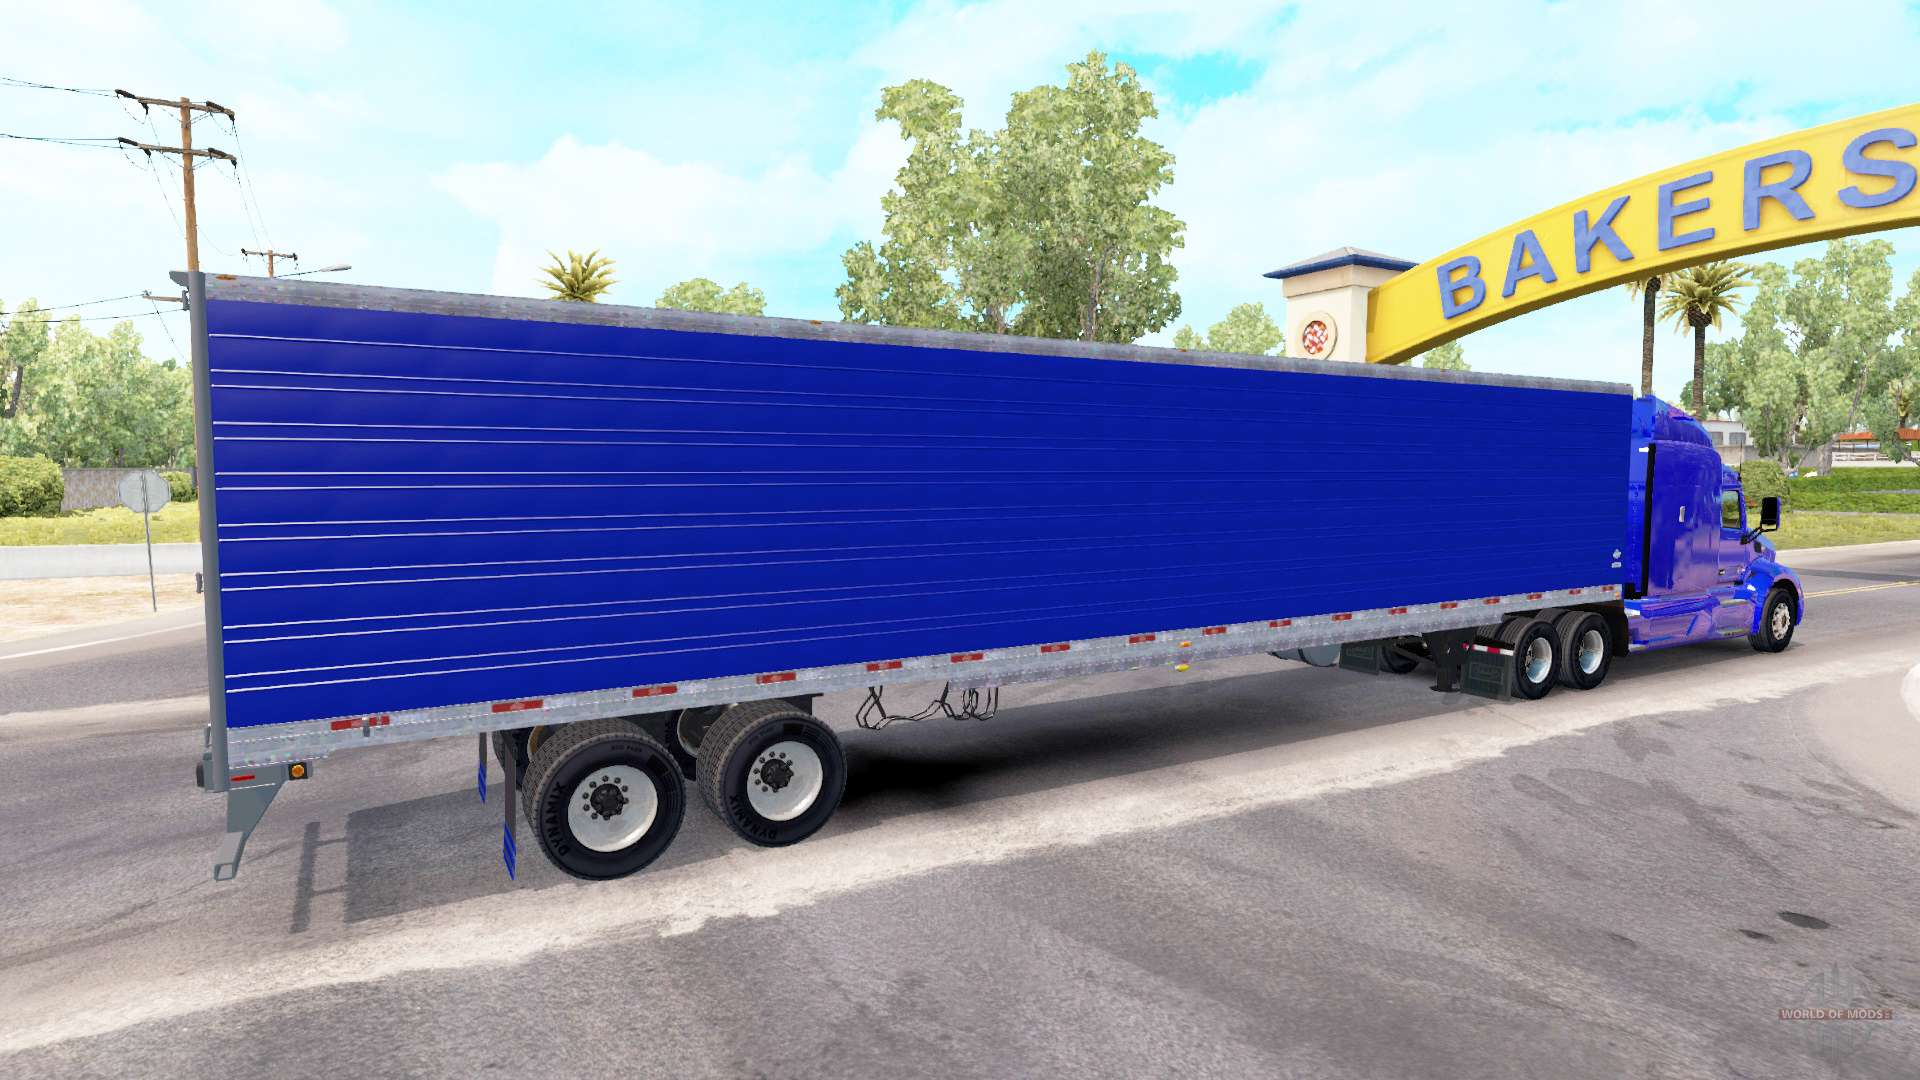 bleu frigorifique semi remorque pour american truck simulator. Black Bedroom Furniture Sets. Home Design Ideas